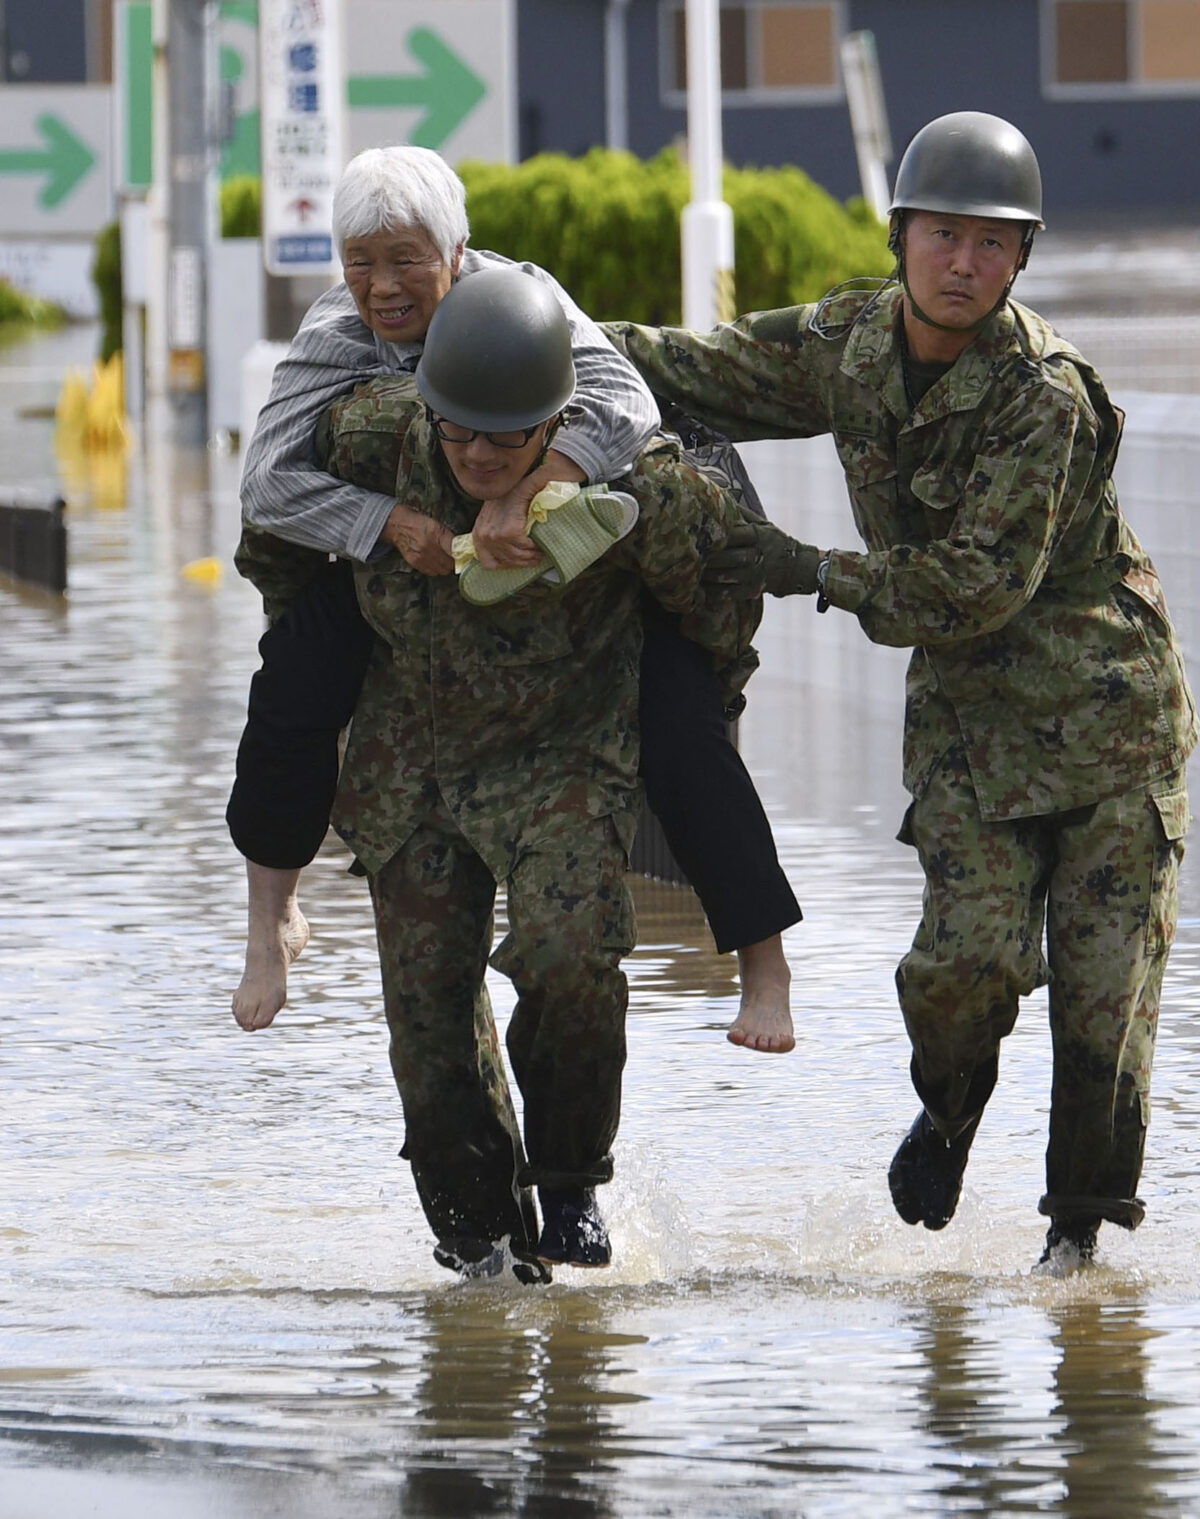 rescue in japan flood after typhoon